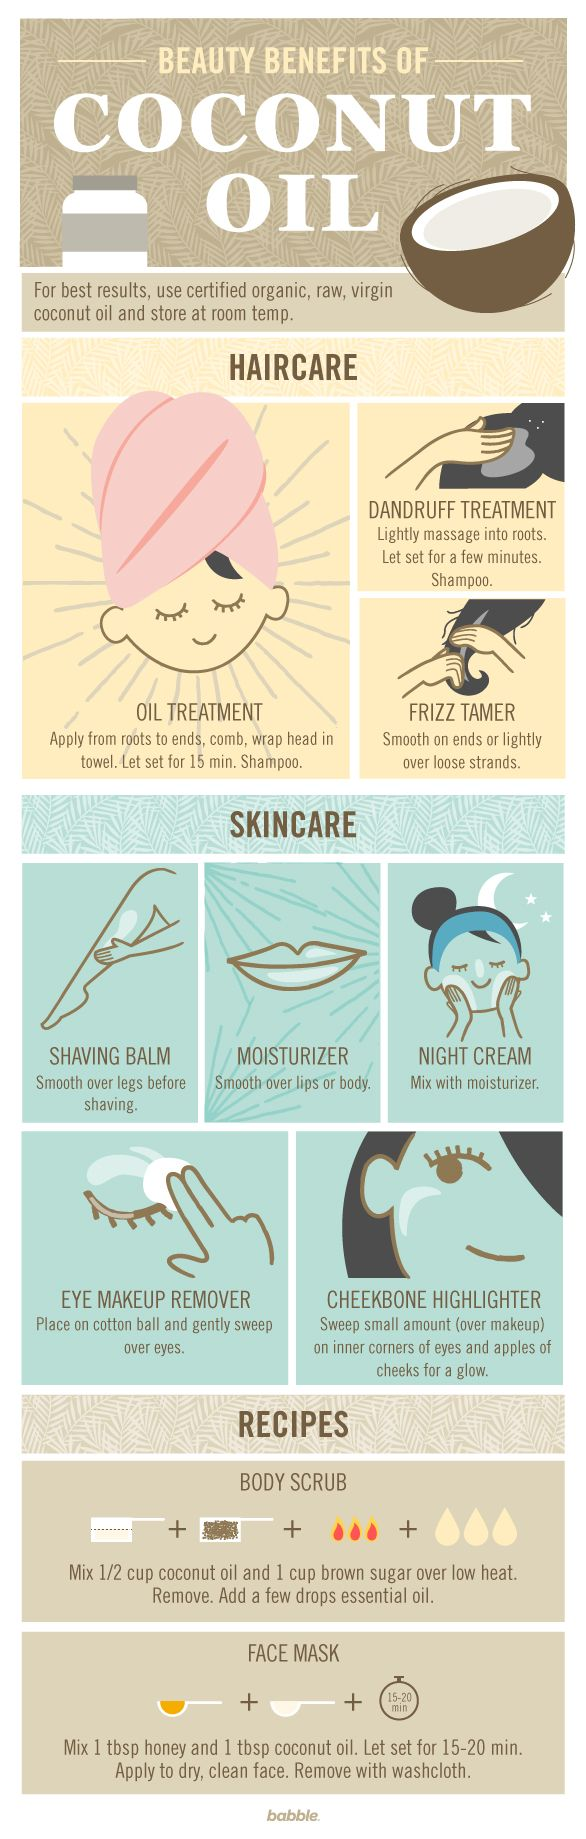 Coconut oil is everywhere right now. You don't know whether to eat it, drink it, or bathe in it. This guide provides you with all the beauty benefits.